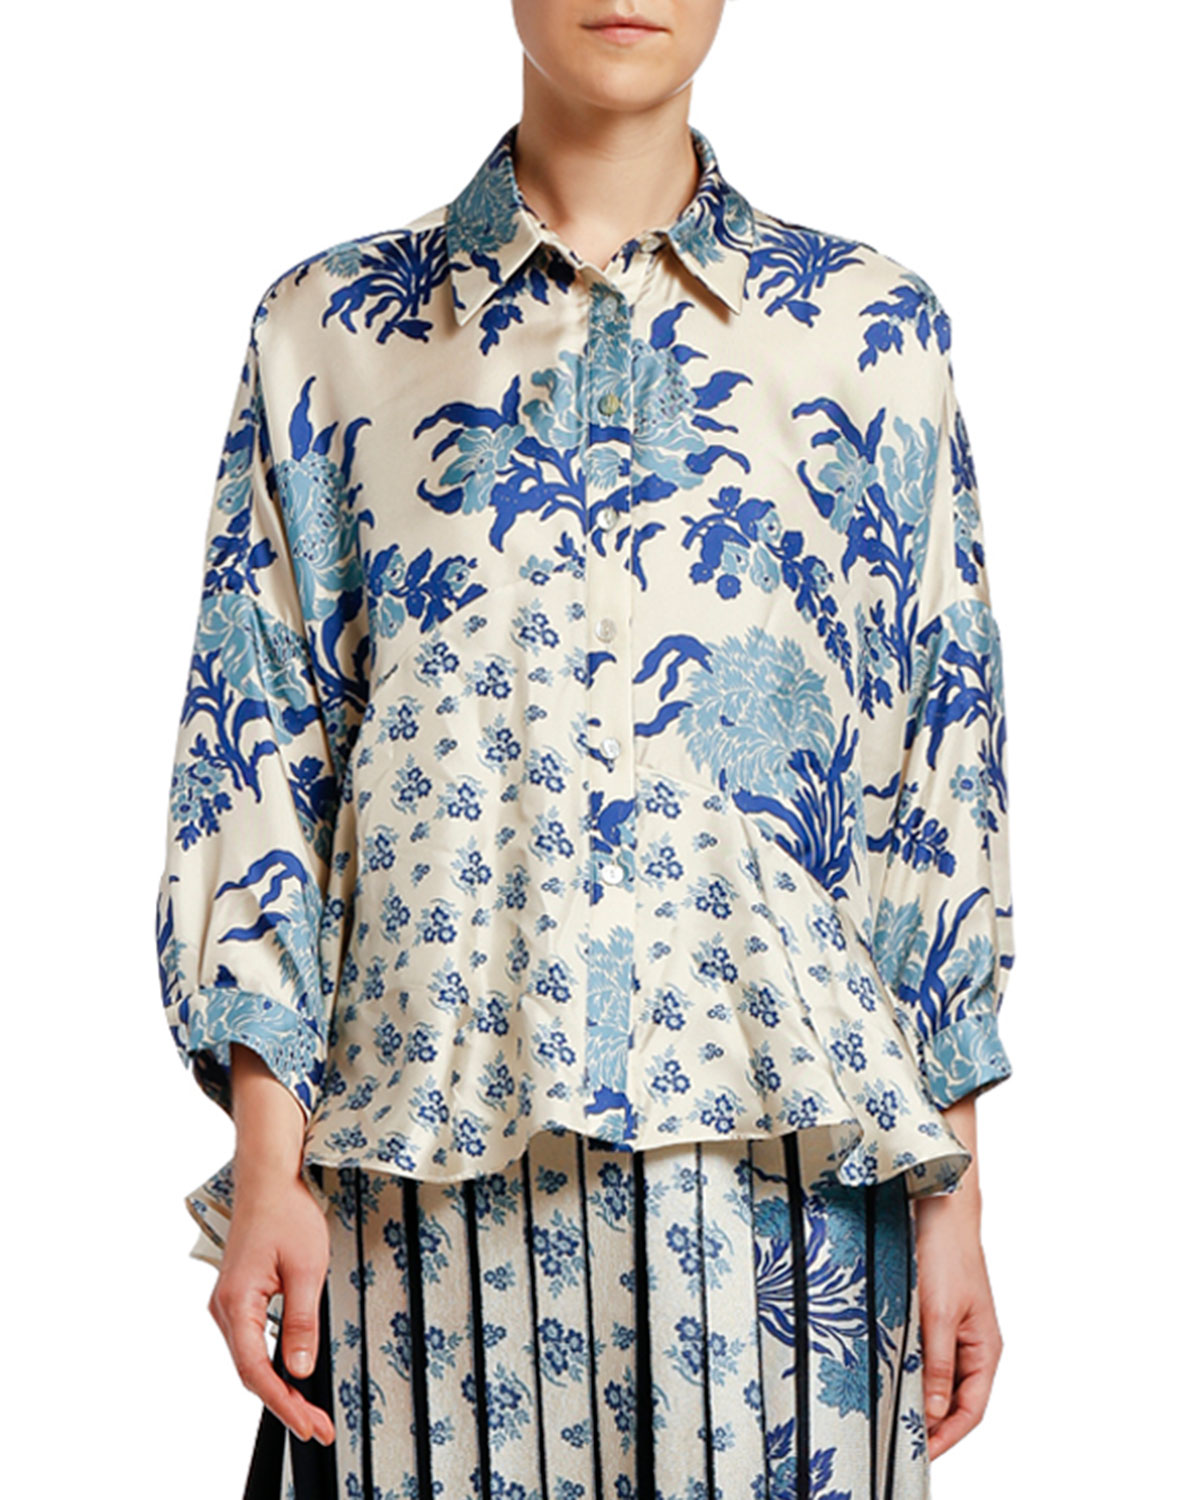 Antonio Marras Japanese Floral Patchwork Silk High-Low Shirt